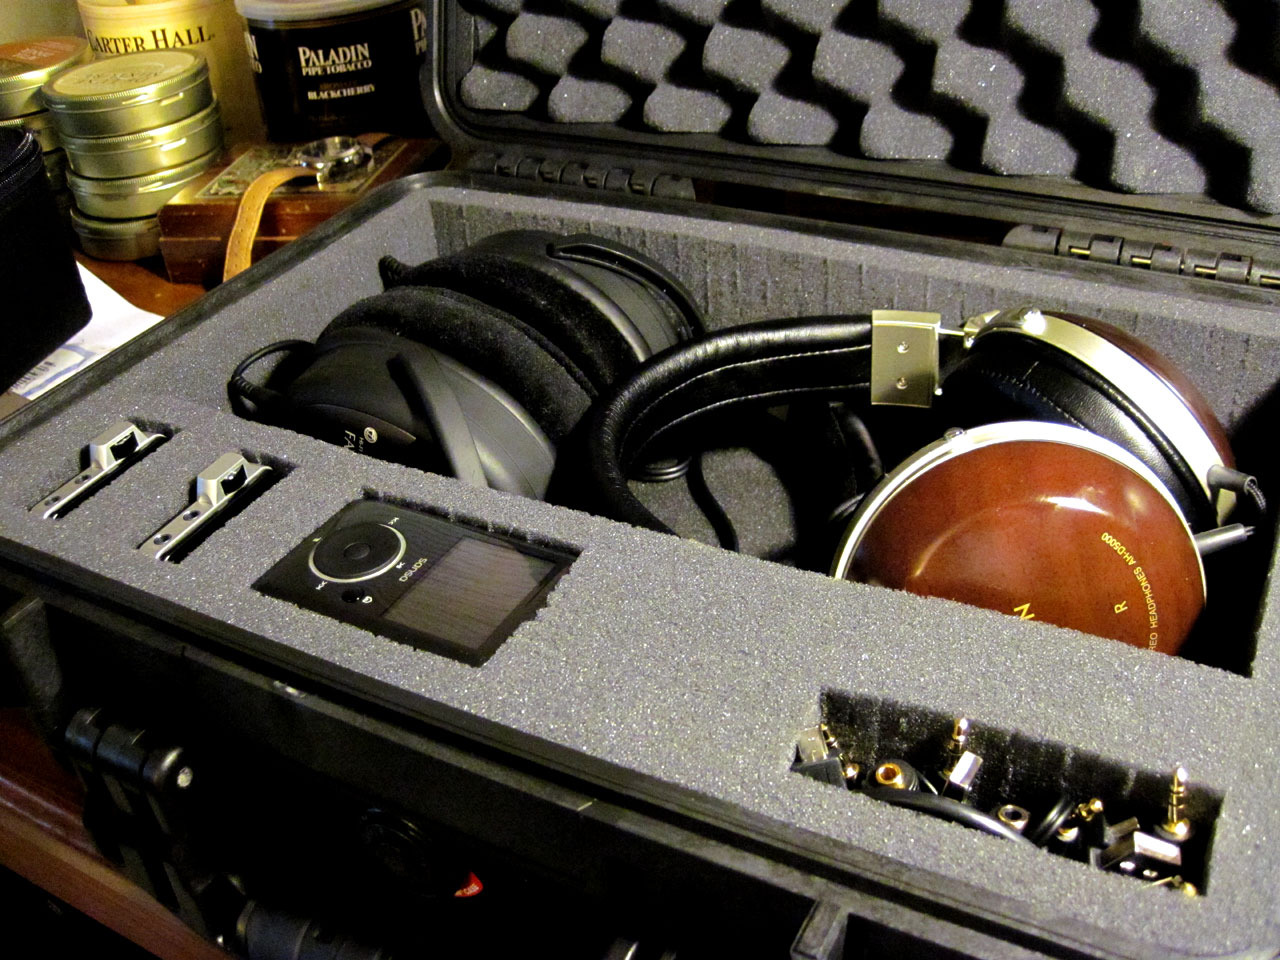 Best Travel Case For Portable Audio Player Amp Cables